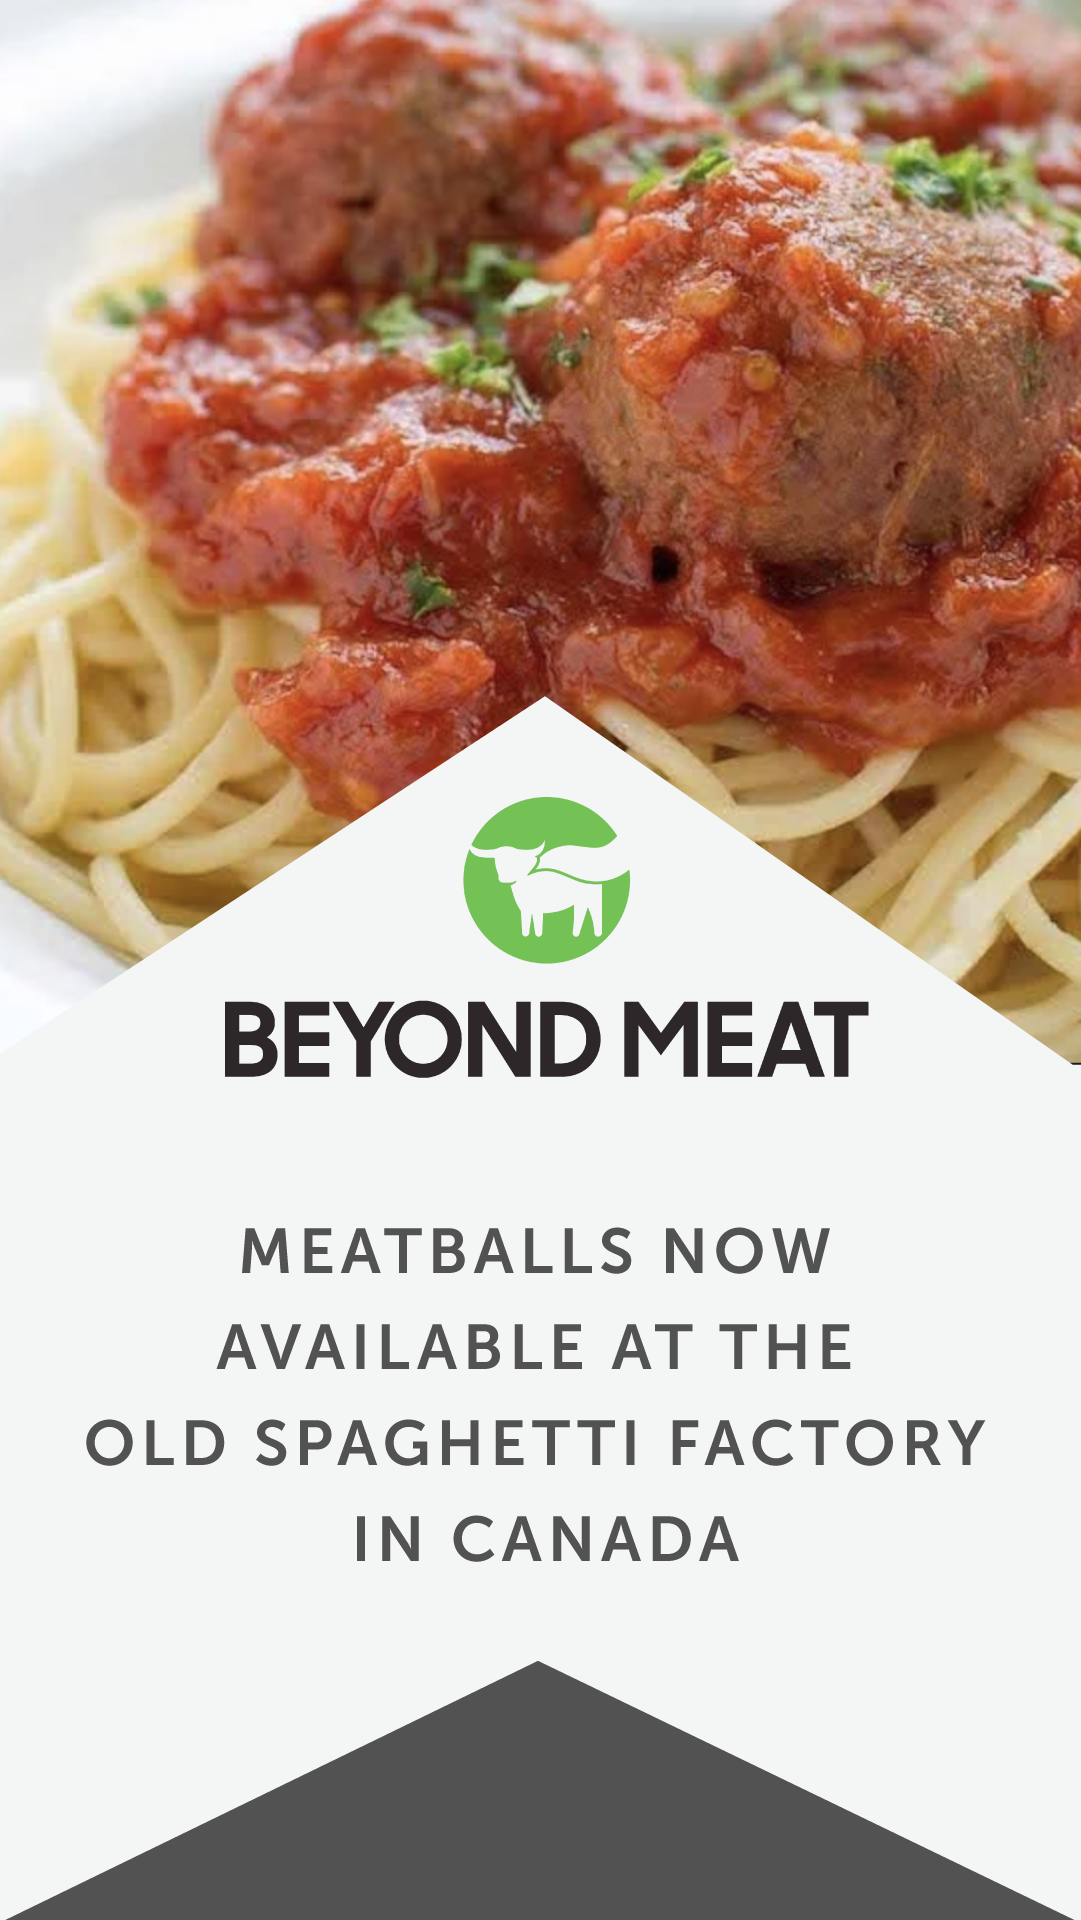 Beyond Meatballs Now Available At The Old Spaghetti Factory In Canada Vegan Fast Food Spaghetti Factory Food